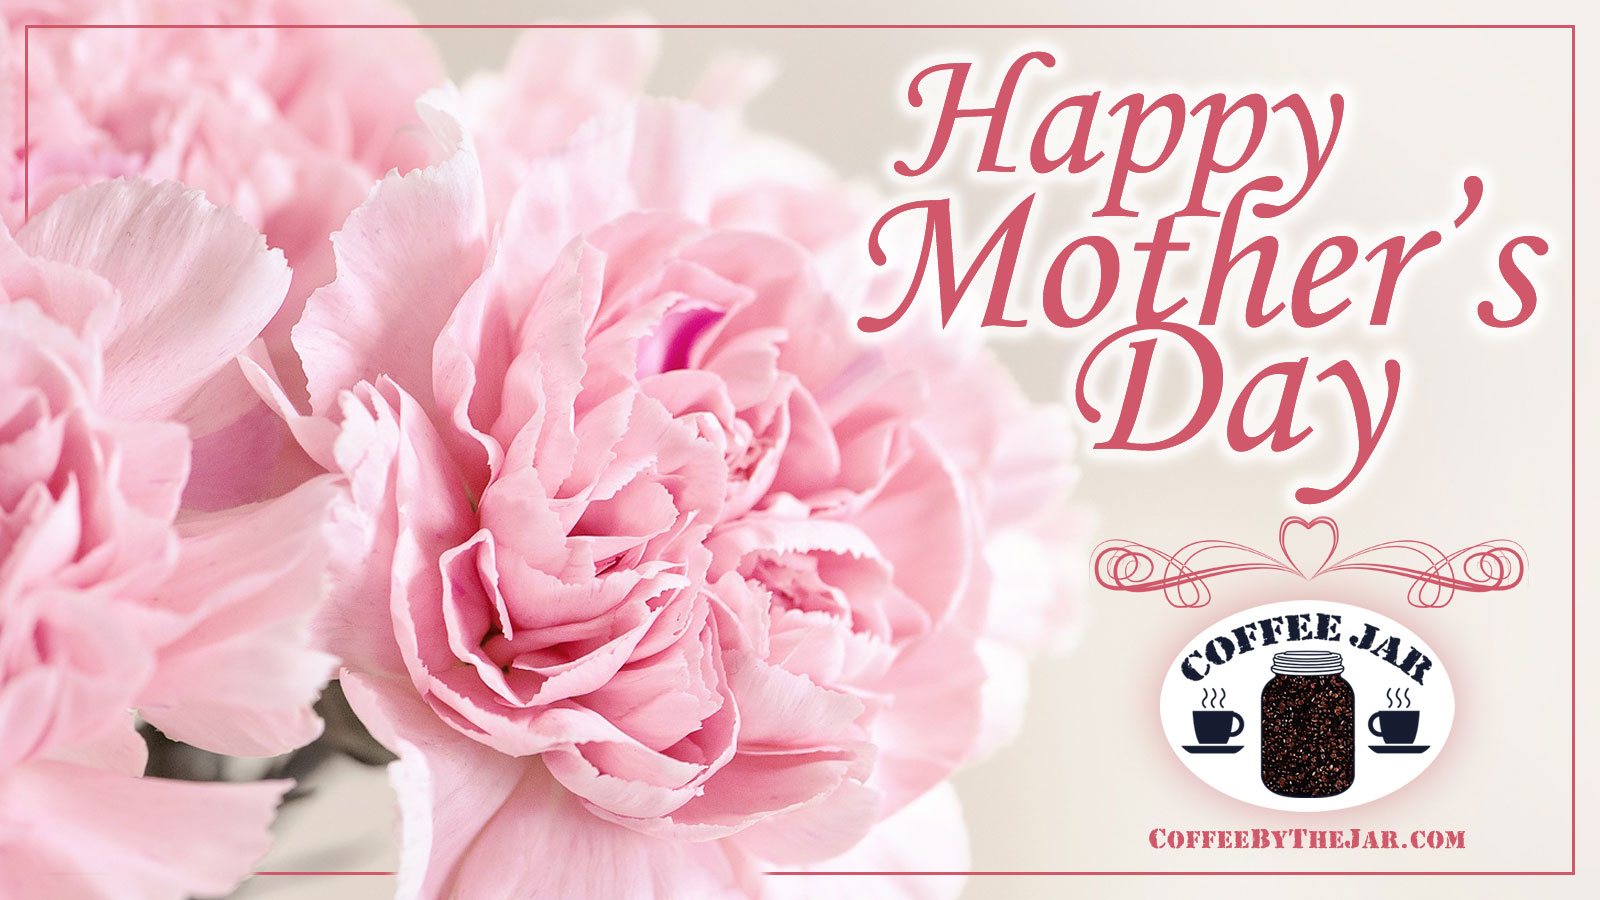 Coffee-Jar-Mothers-Day-wallpaper01-1600x900